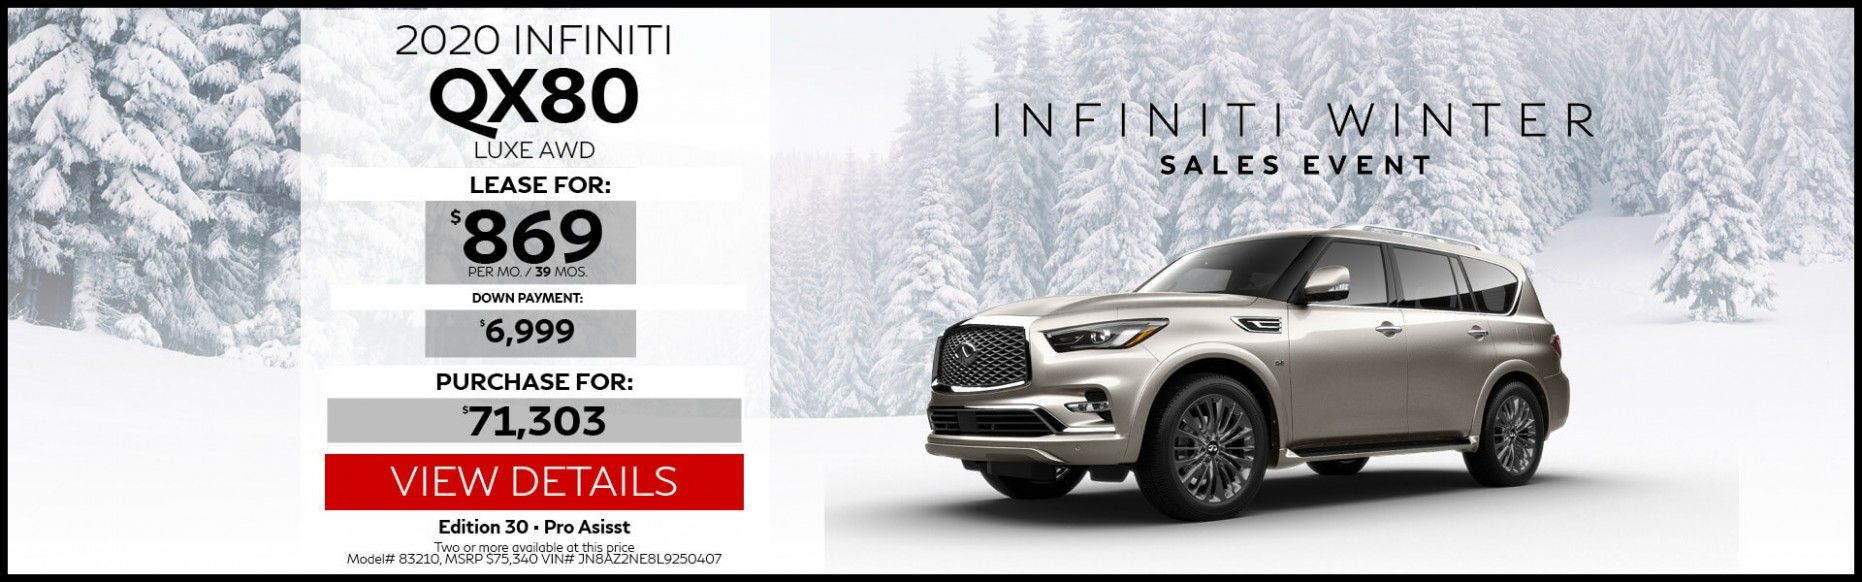 15 Things To Avoid In Infiniti Truck 2020 Design 15 Things To Avoid In Infiniti Truck 2020 Design Infiniti Truck 2020 Design Welcome For You To The Website